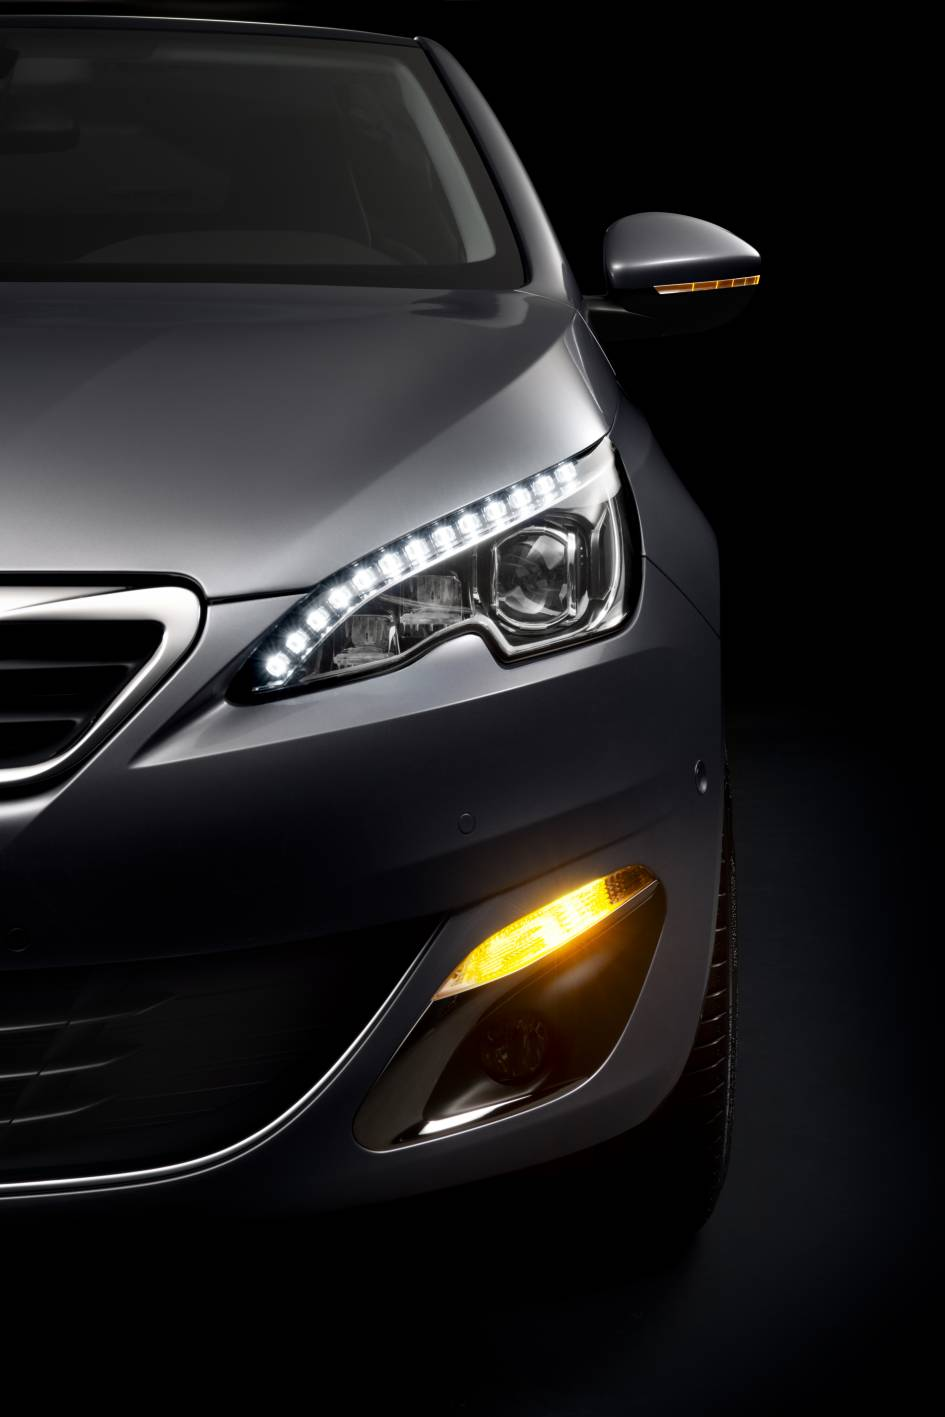 2014 Peugeot Rcz R Black Wallpaper: News: 2014 Peugeot 308 Pricing And